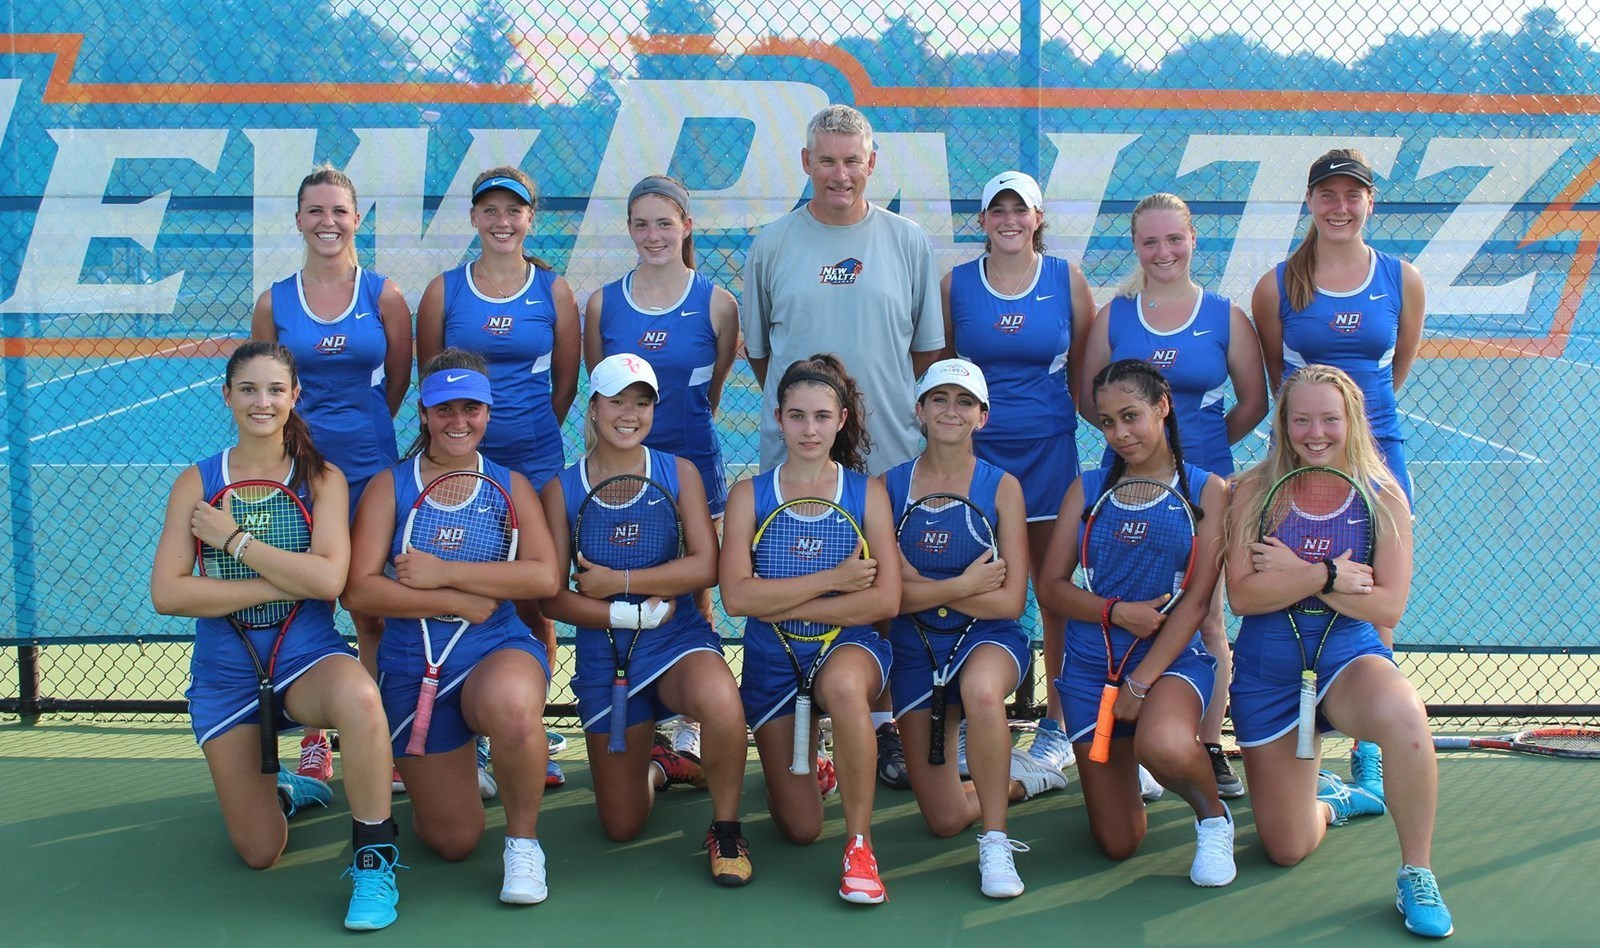 Team photo 2018 tennis